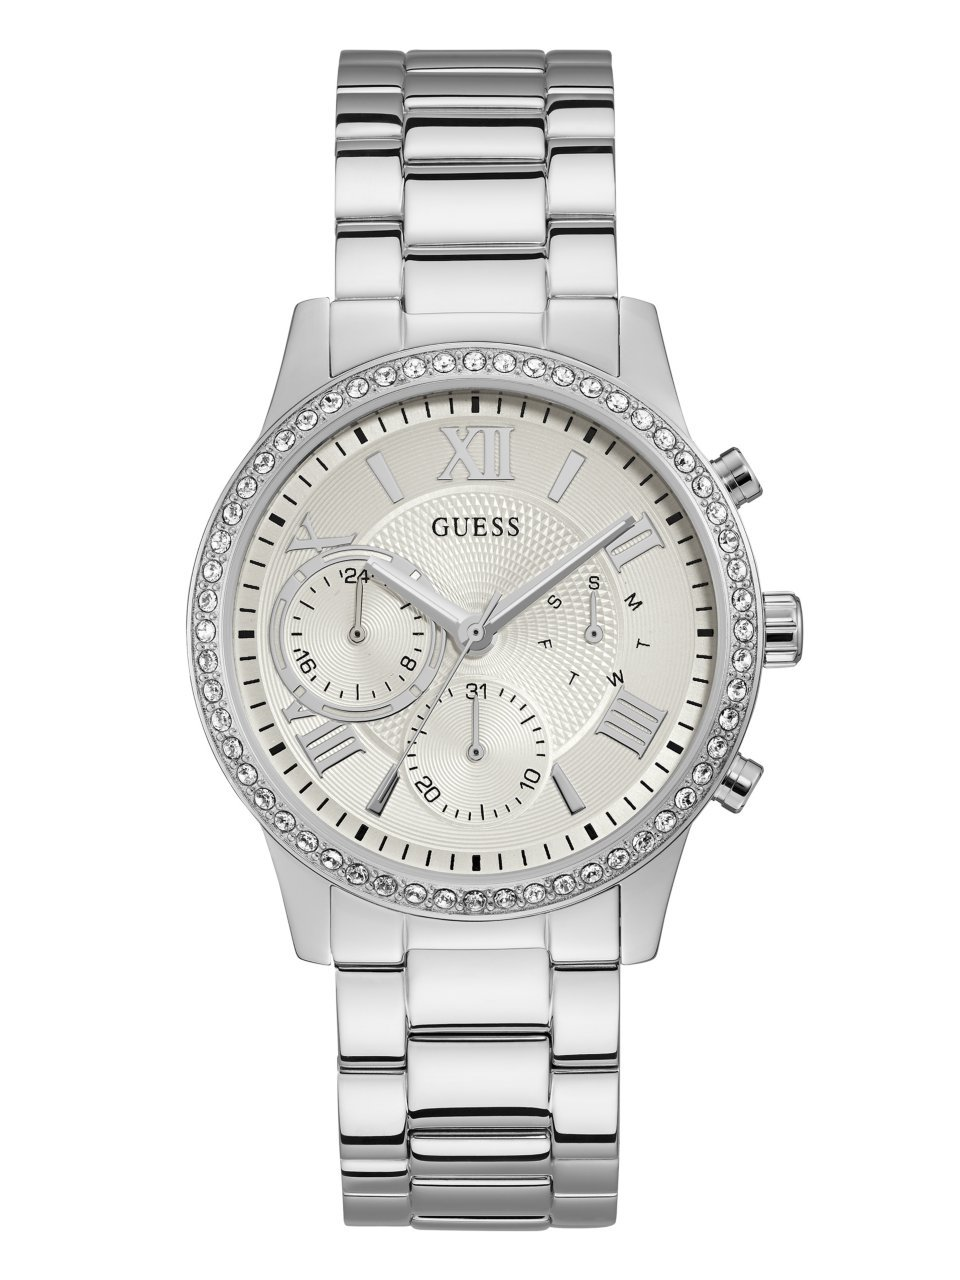 GUESS Women's Stainless Steel Crystal Casual Watch, Color: Silver-Tone (Model: U1069L1)